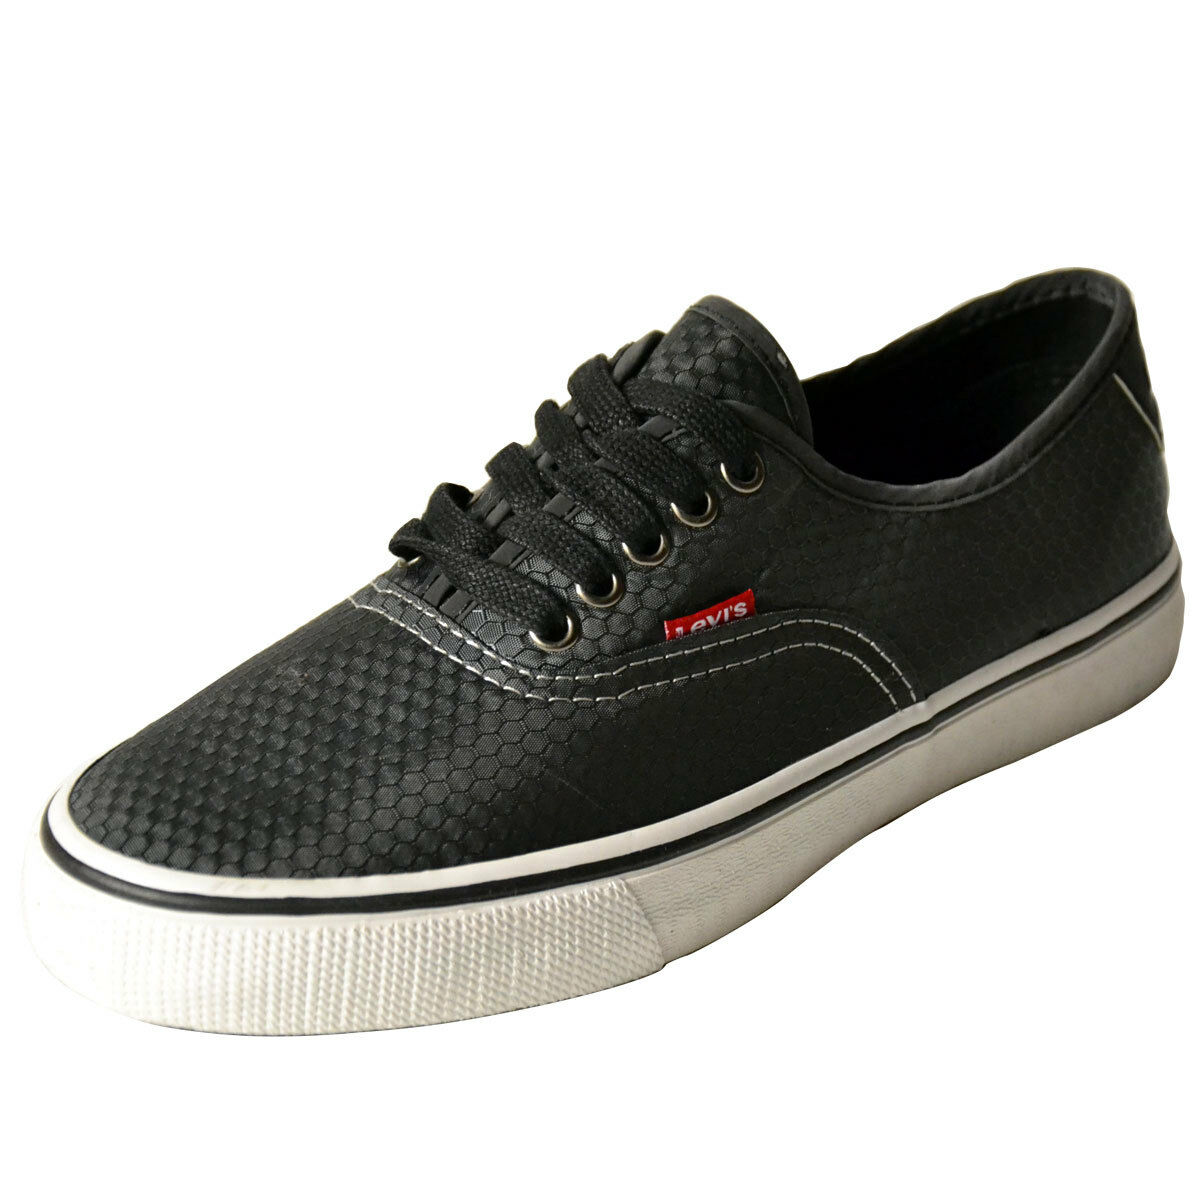 Levis Shoes Jordy Energy 2.0 Charcoal Mens Sneakers